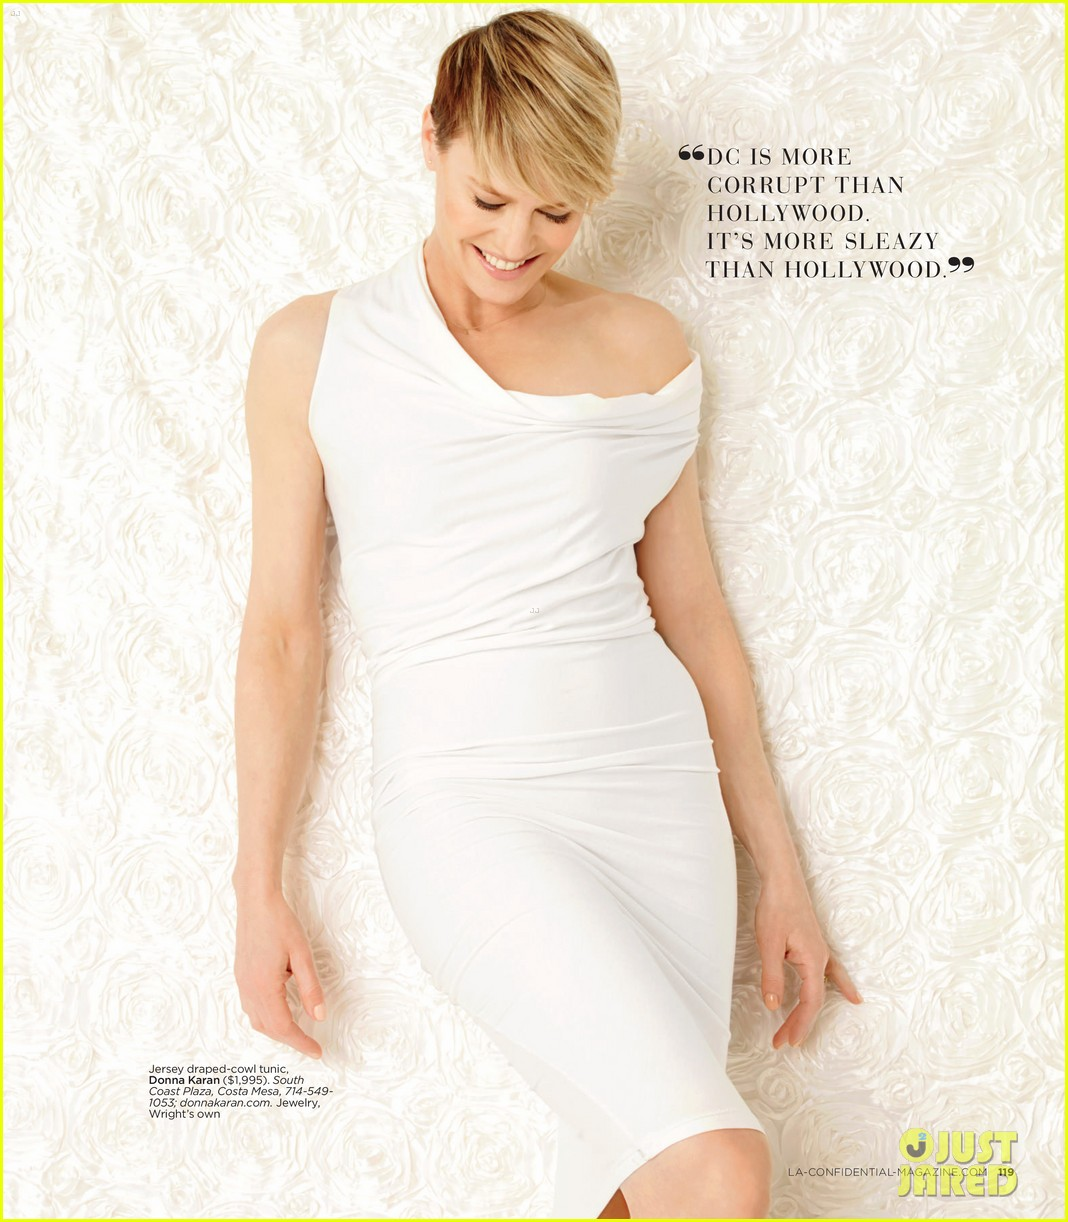 robin wright los angeles confidential magazine 03